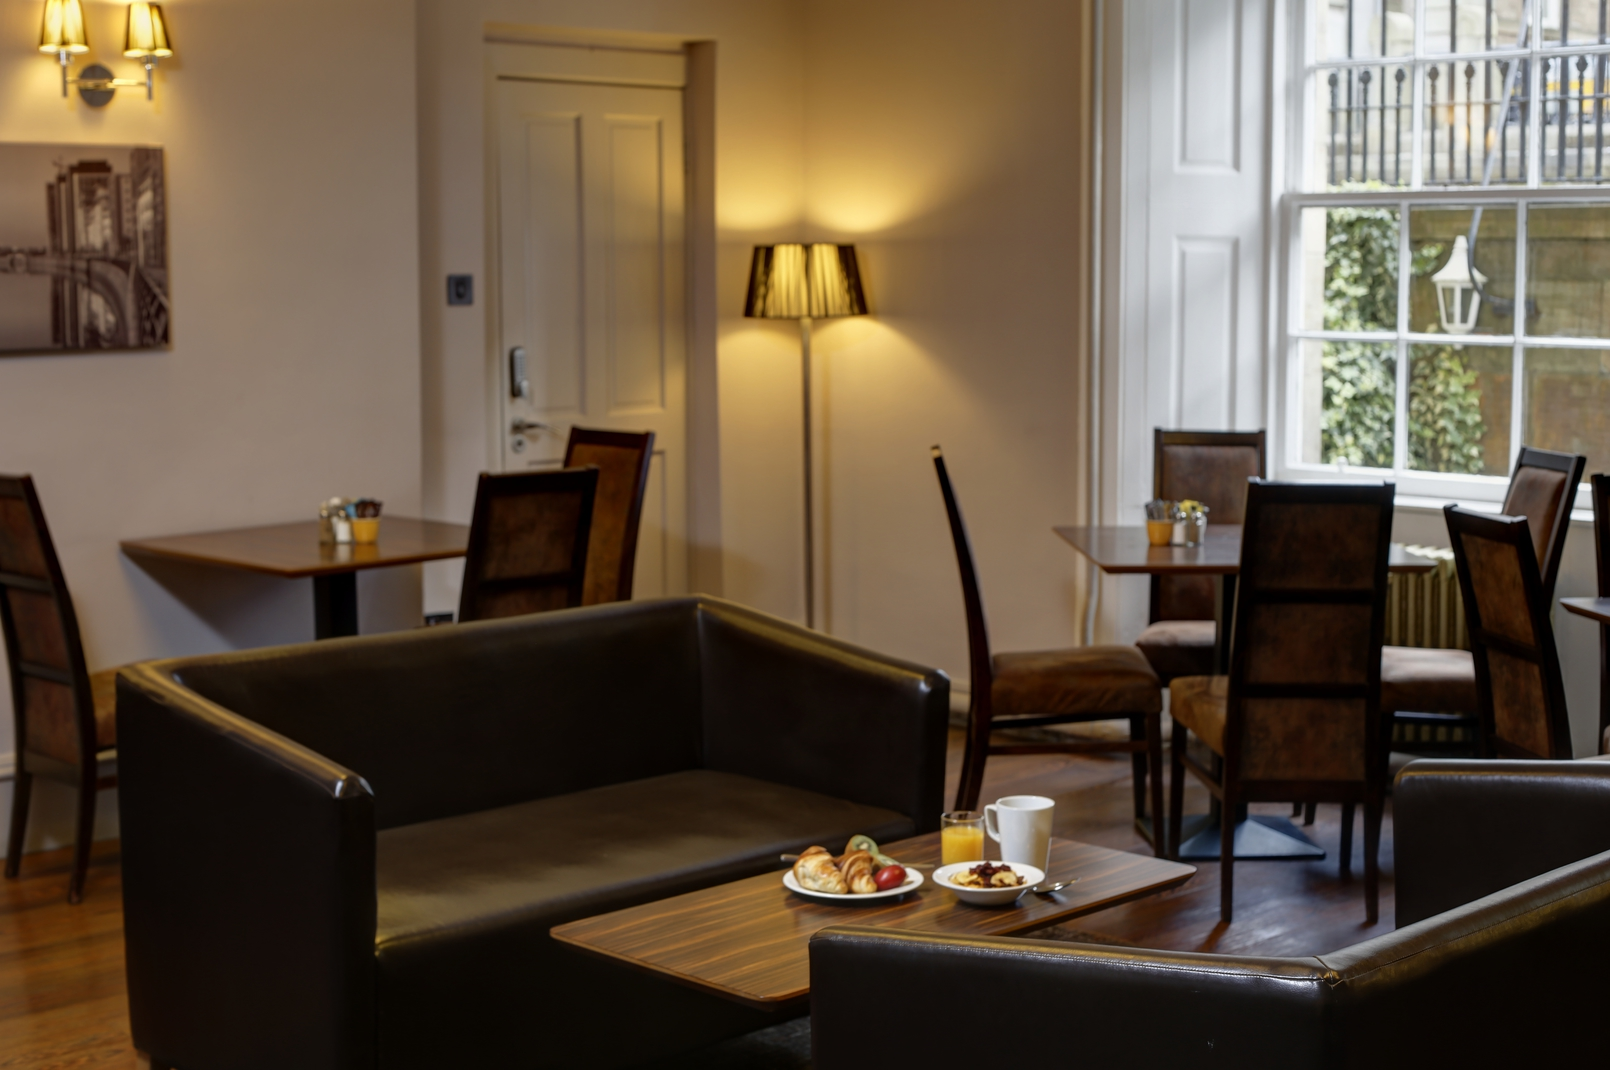 sofa shops glasgow city centre florence knoll replica uk best western hotel dining 16 83525